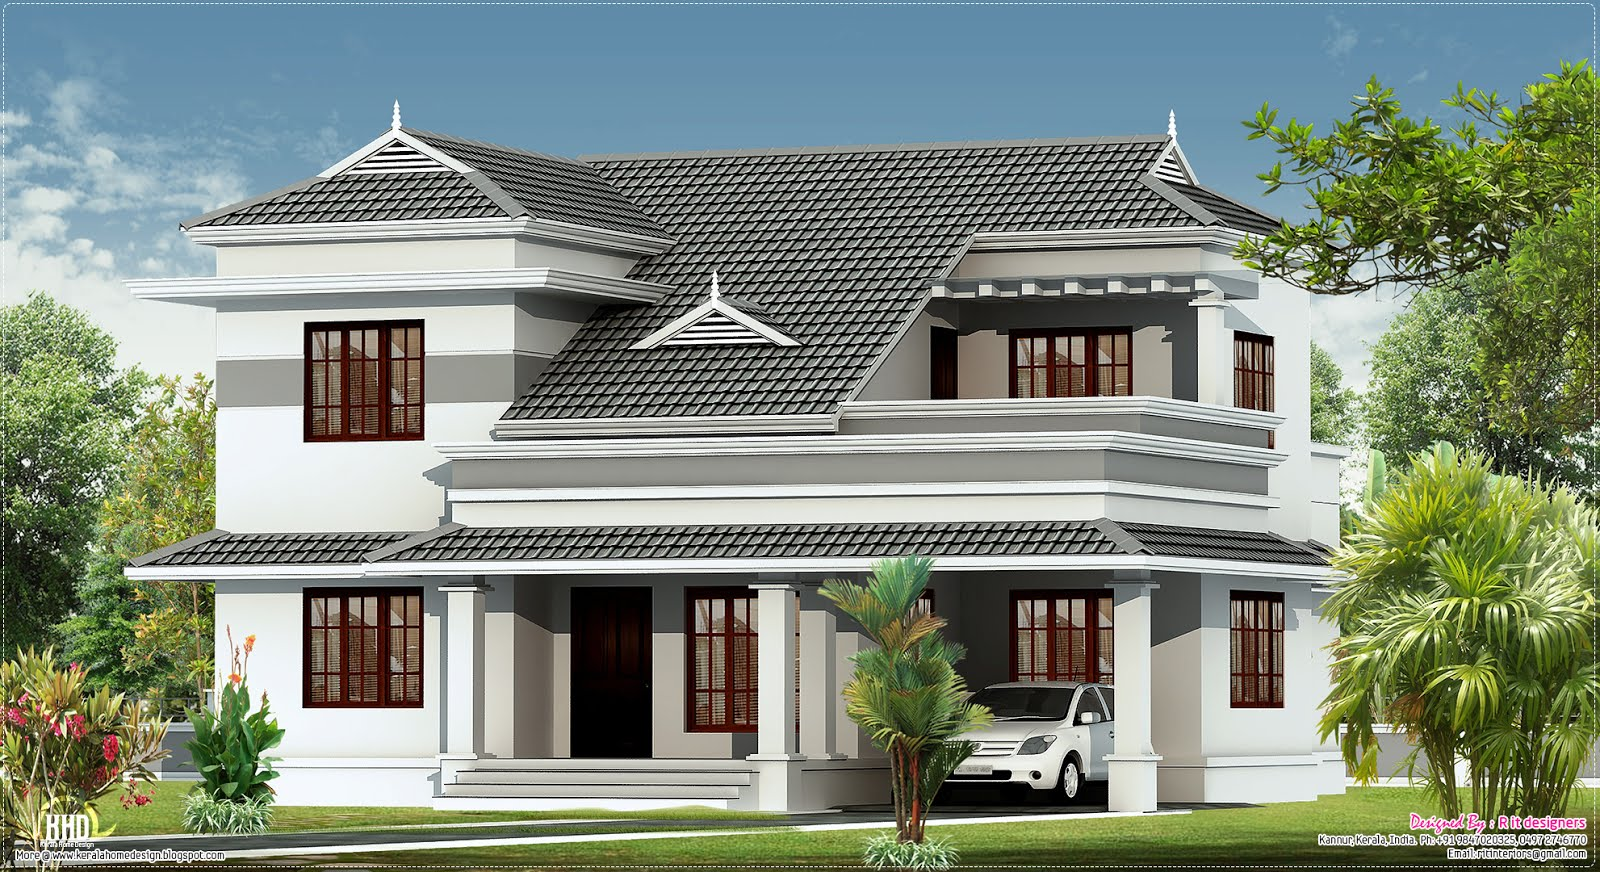 New villa design in 2250 kerala home design and for Villa house plans